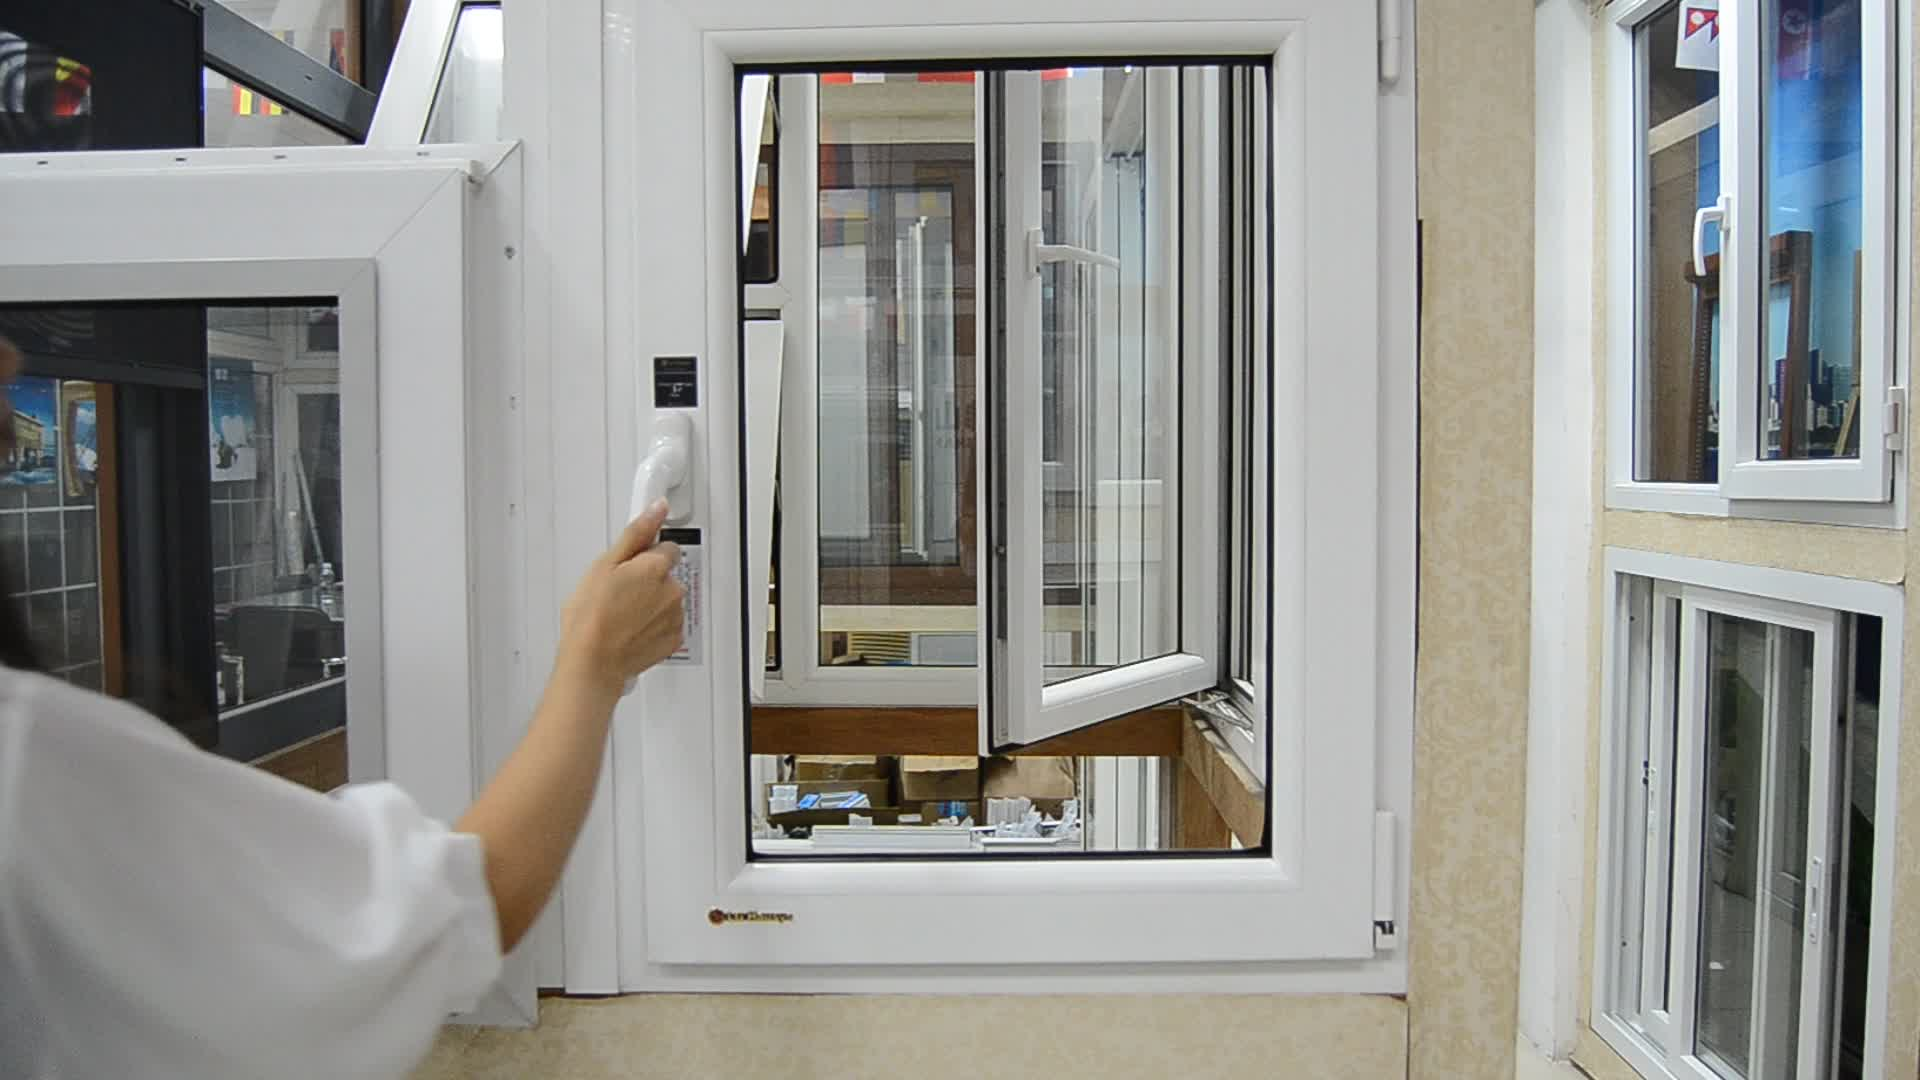 Hurricane resistant small vertical glass opening window for house casement windows